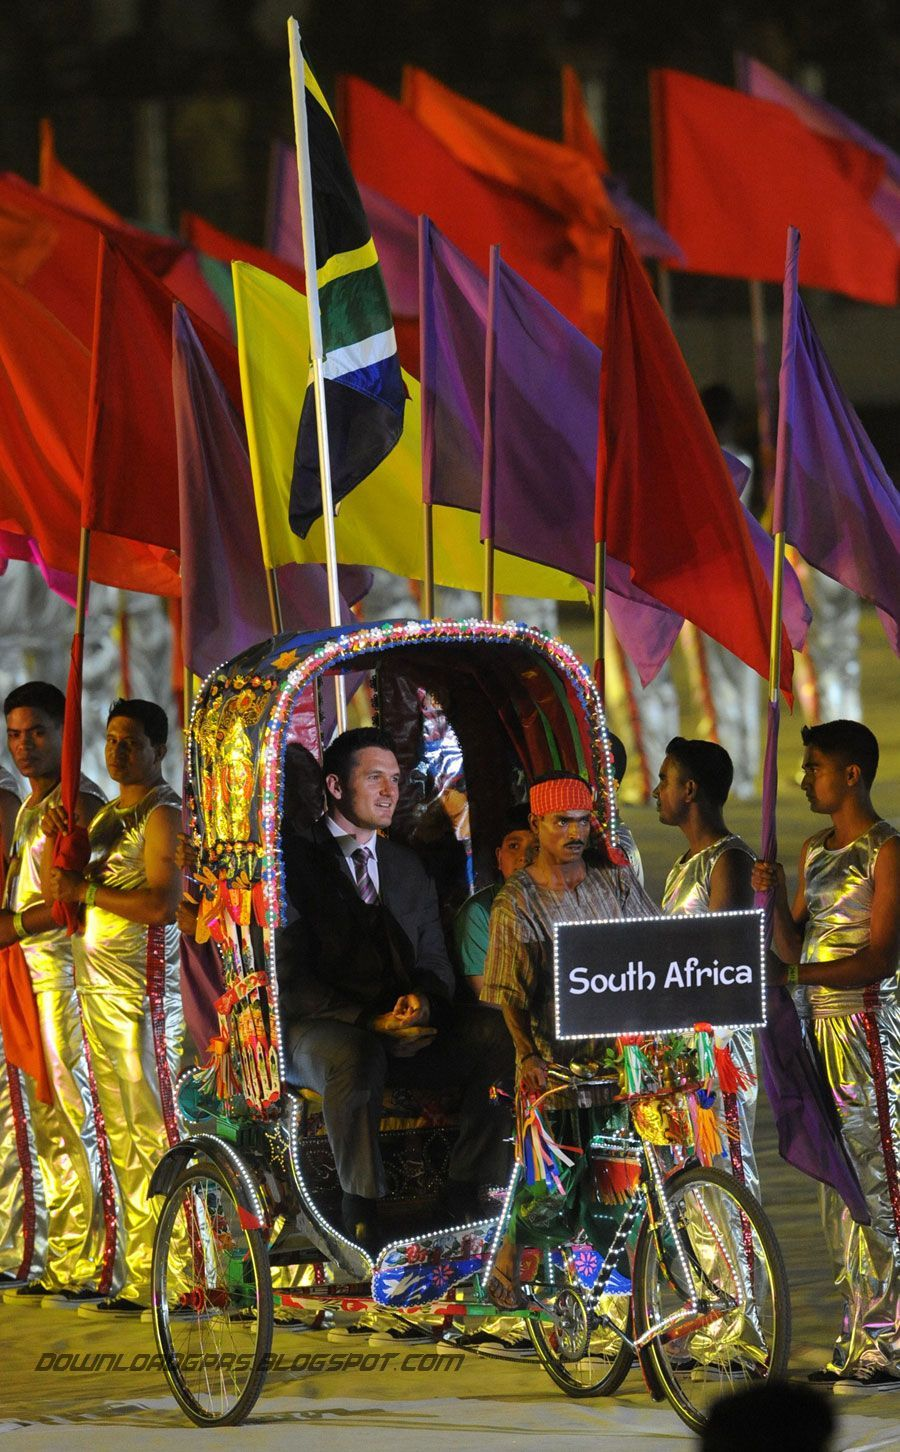 Opening Ceremony Fall 2015: ICC Cricket World Cup 2011 Opening Ceremony Pics,Gallery